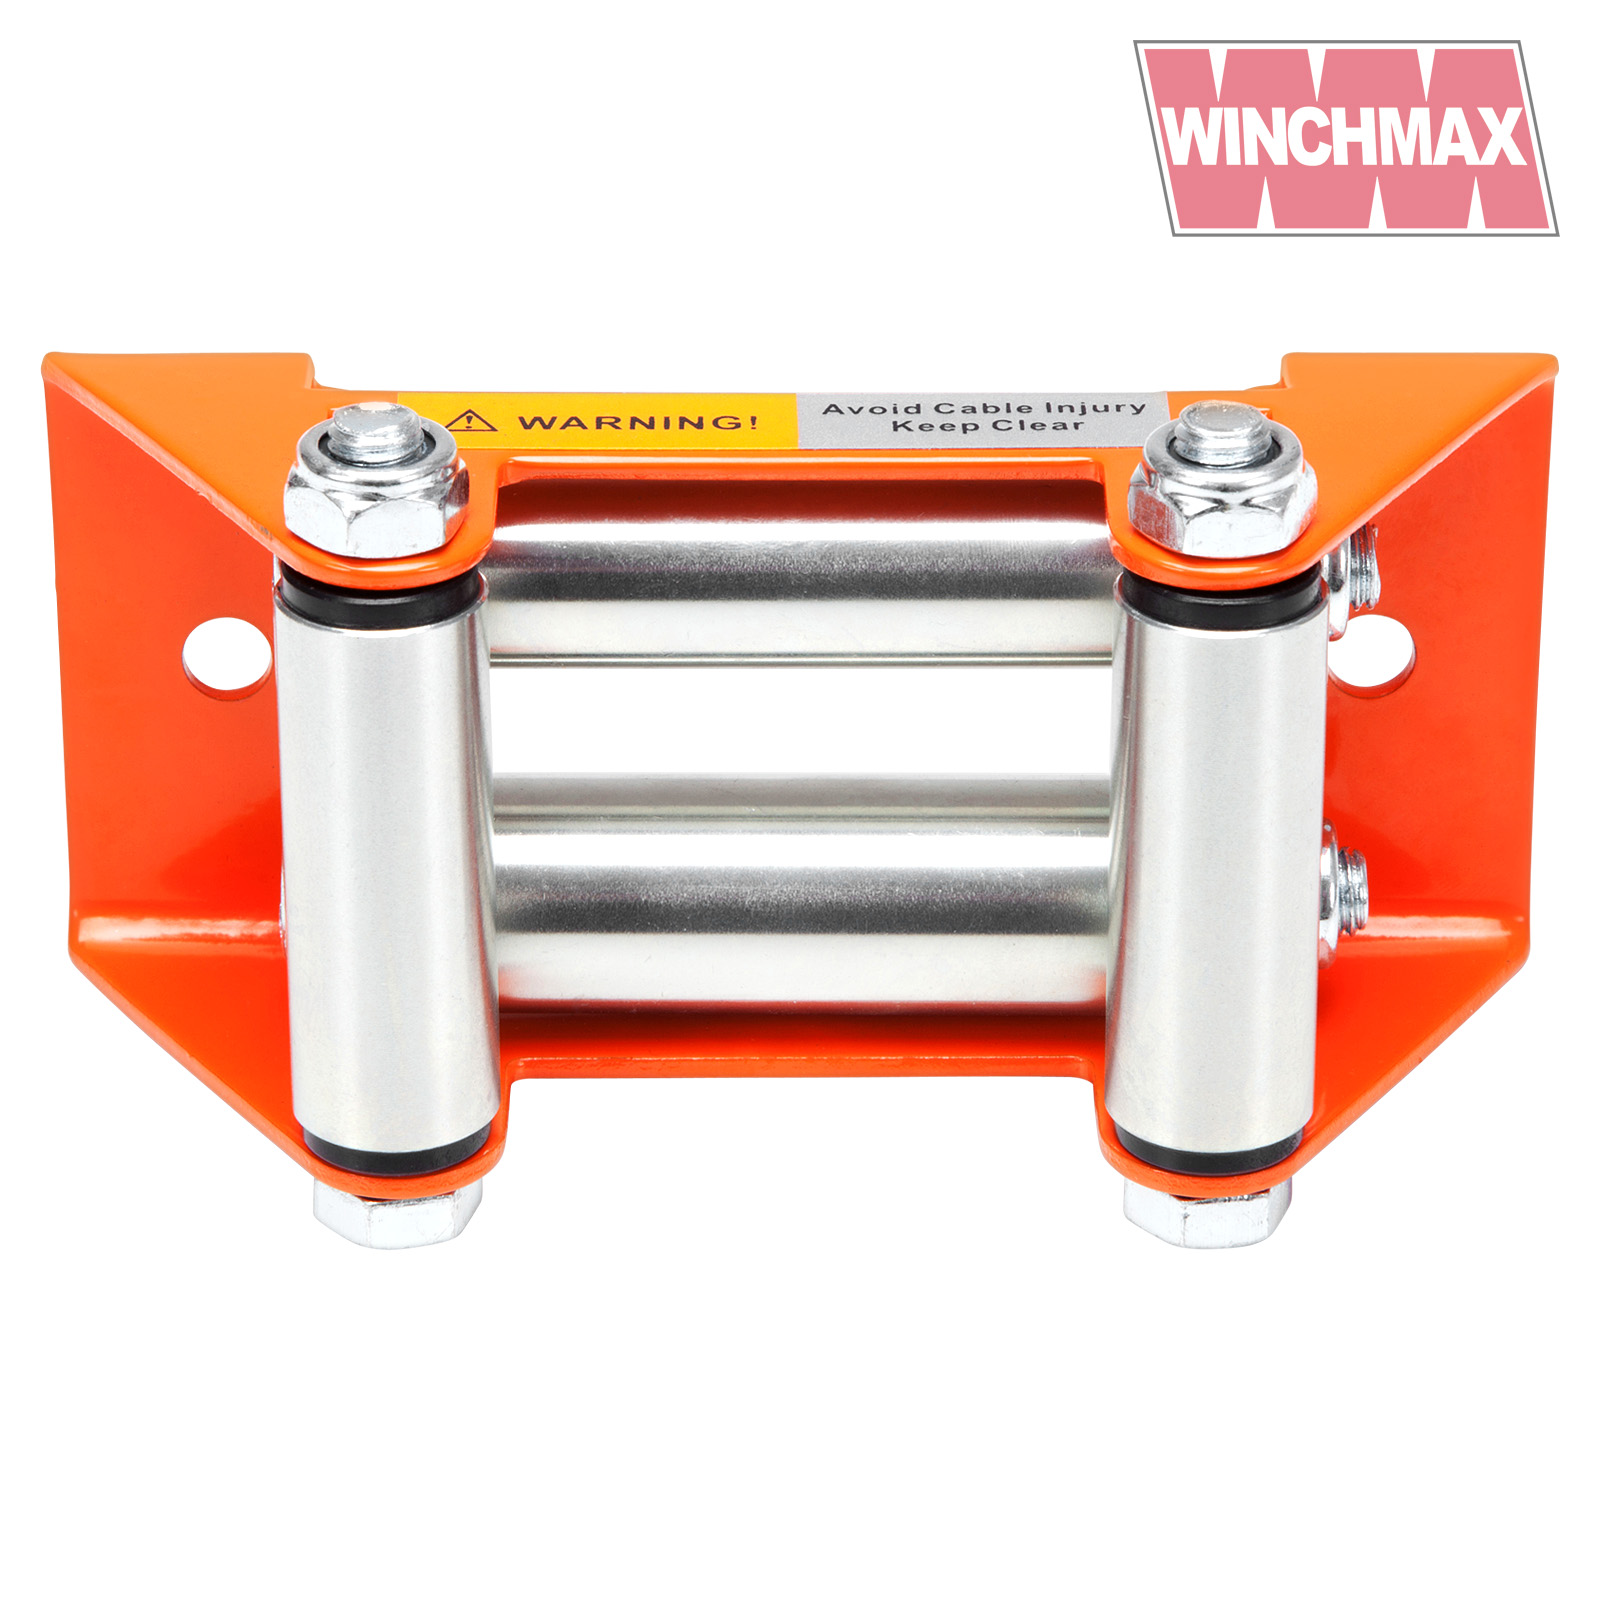 Roller Fairlead  Small  Orange  Galvanised Rollers